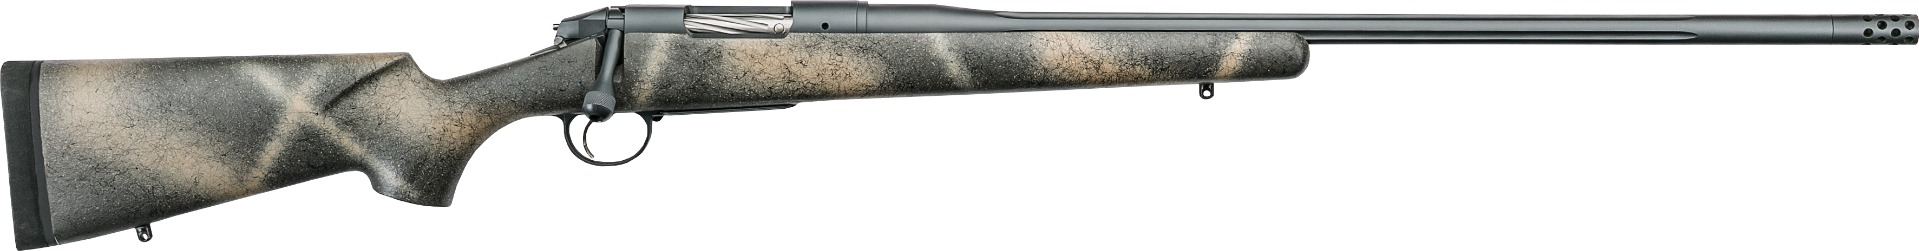 Bergara Highlander 7mm Rem Mag